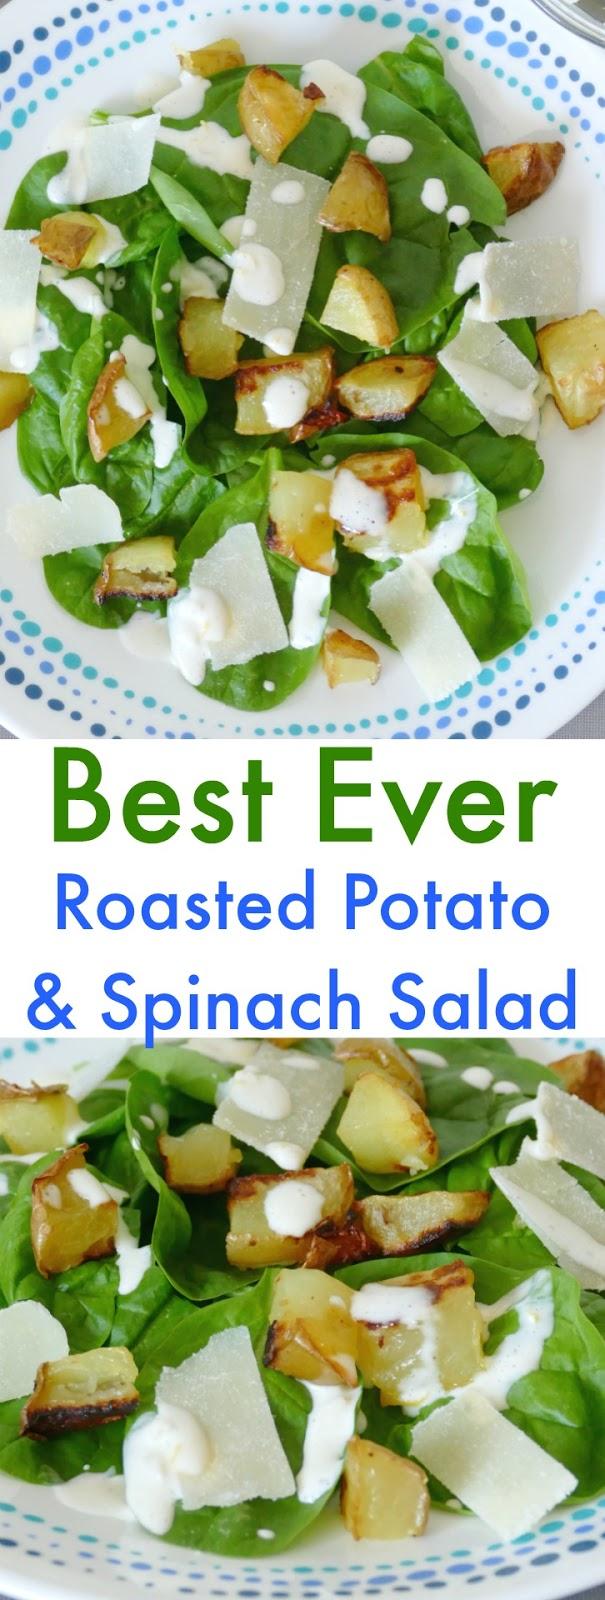 This best ever spinach salad is a perfect fall or winter lunch or dinner! It goes great with chicken or beef, sandwiches or soup! The sauce gets all it's amazing flavor from garlic and lemon zest!